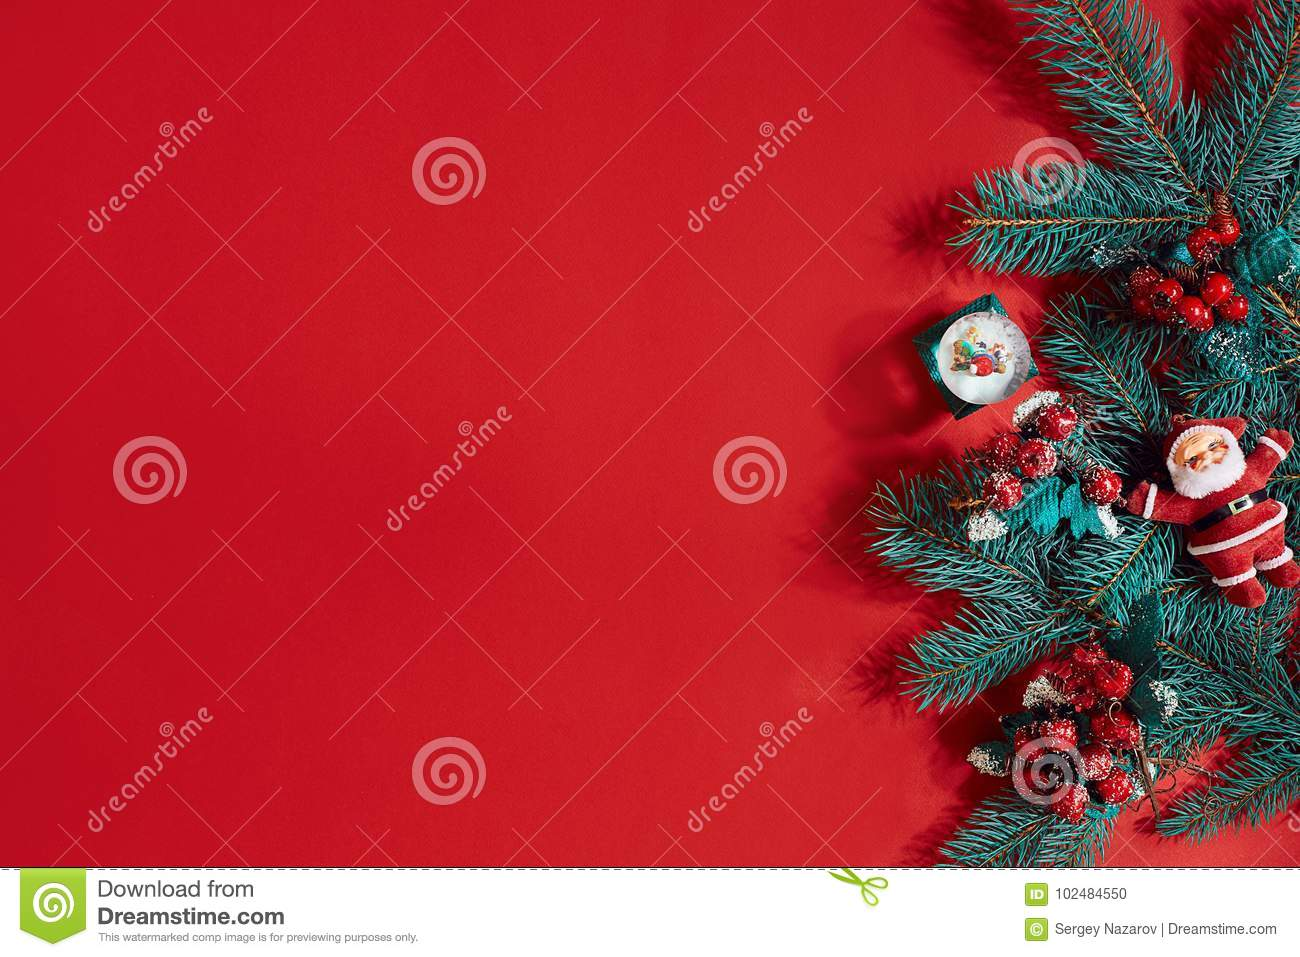 Fir branches border on red background, good for christmas backdrop